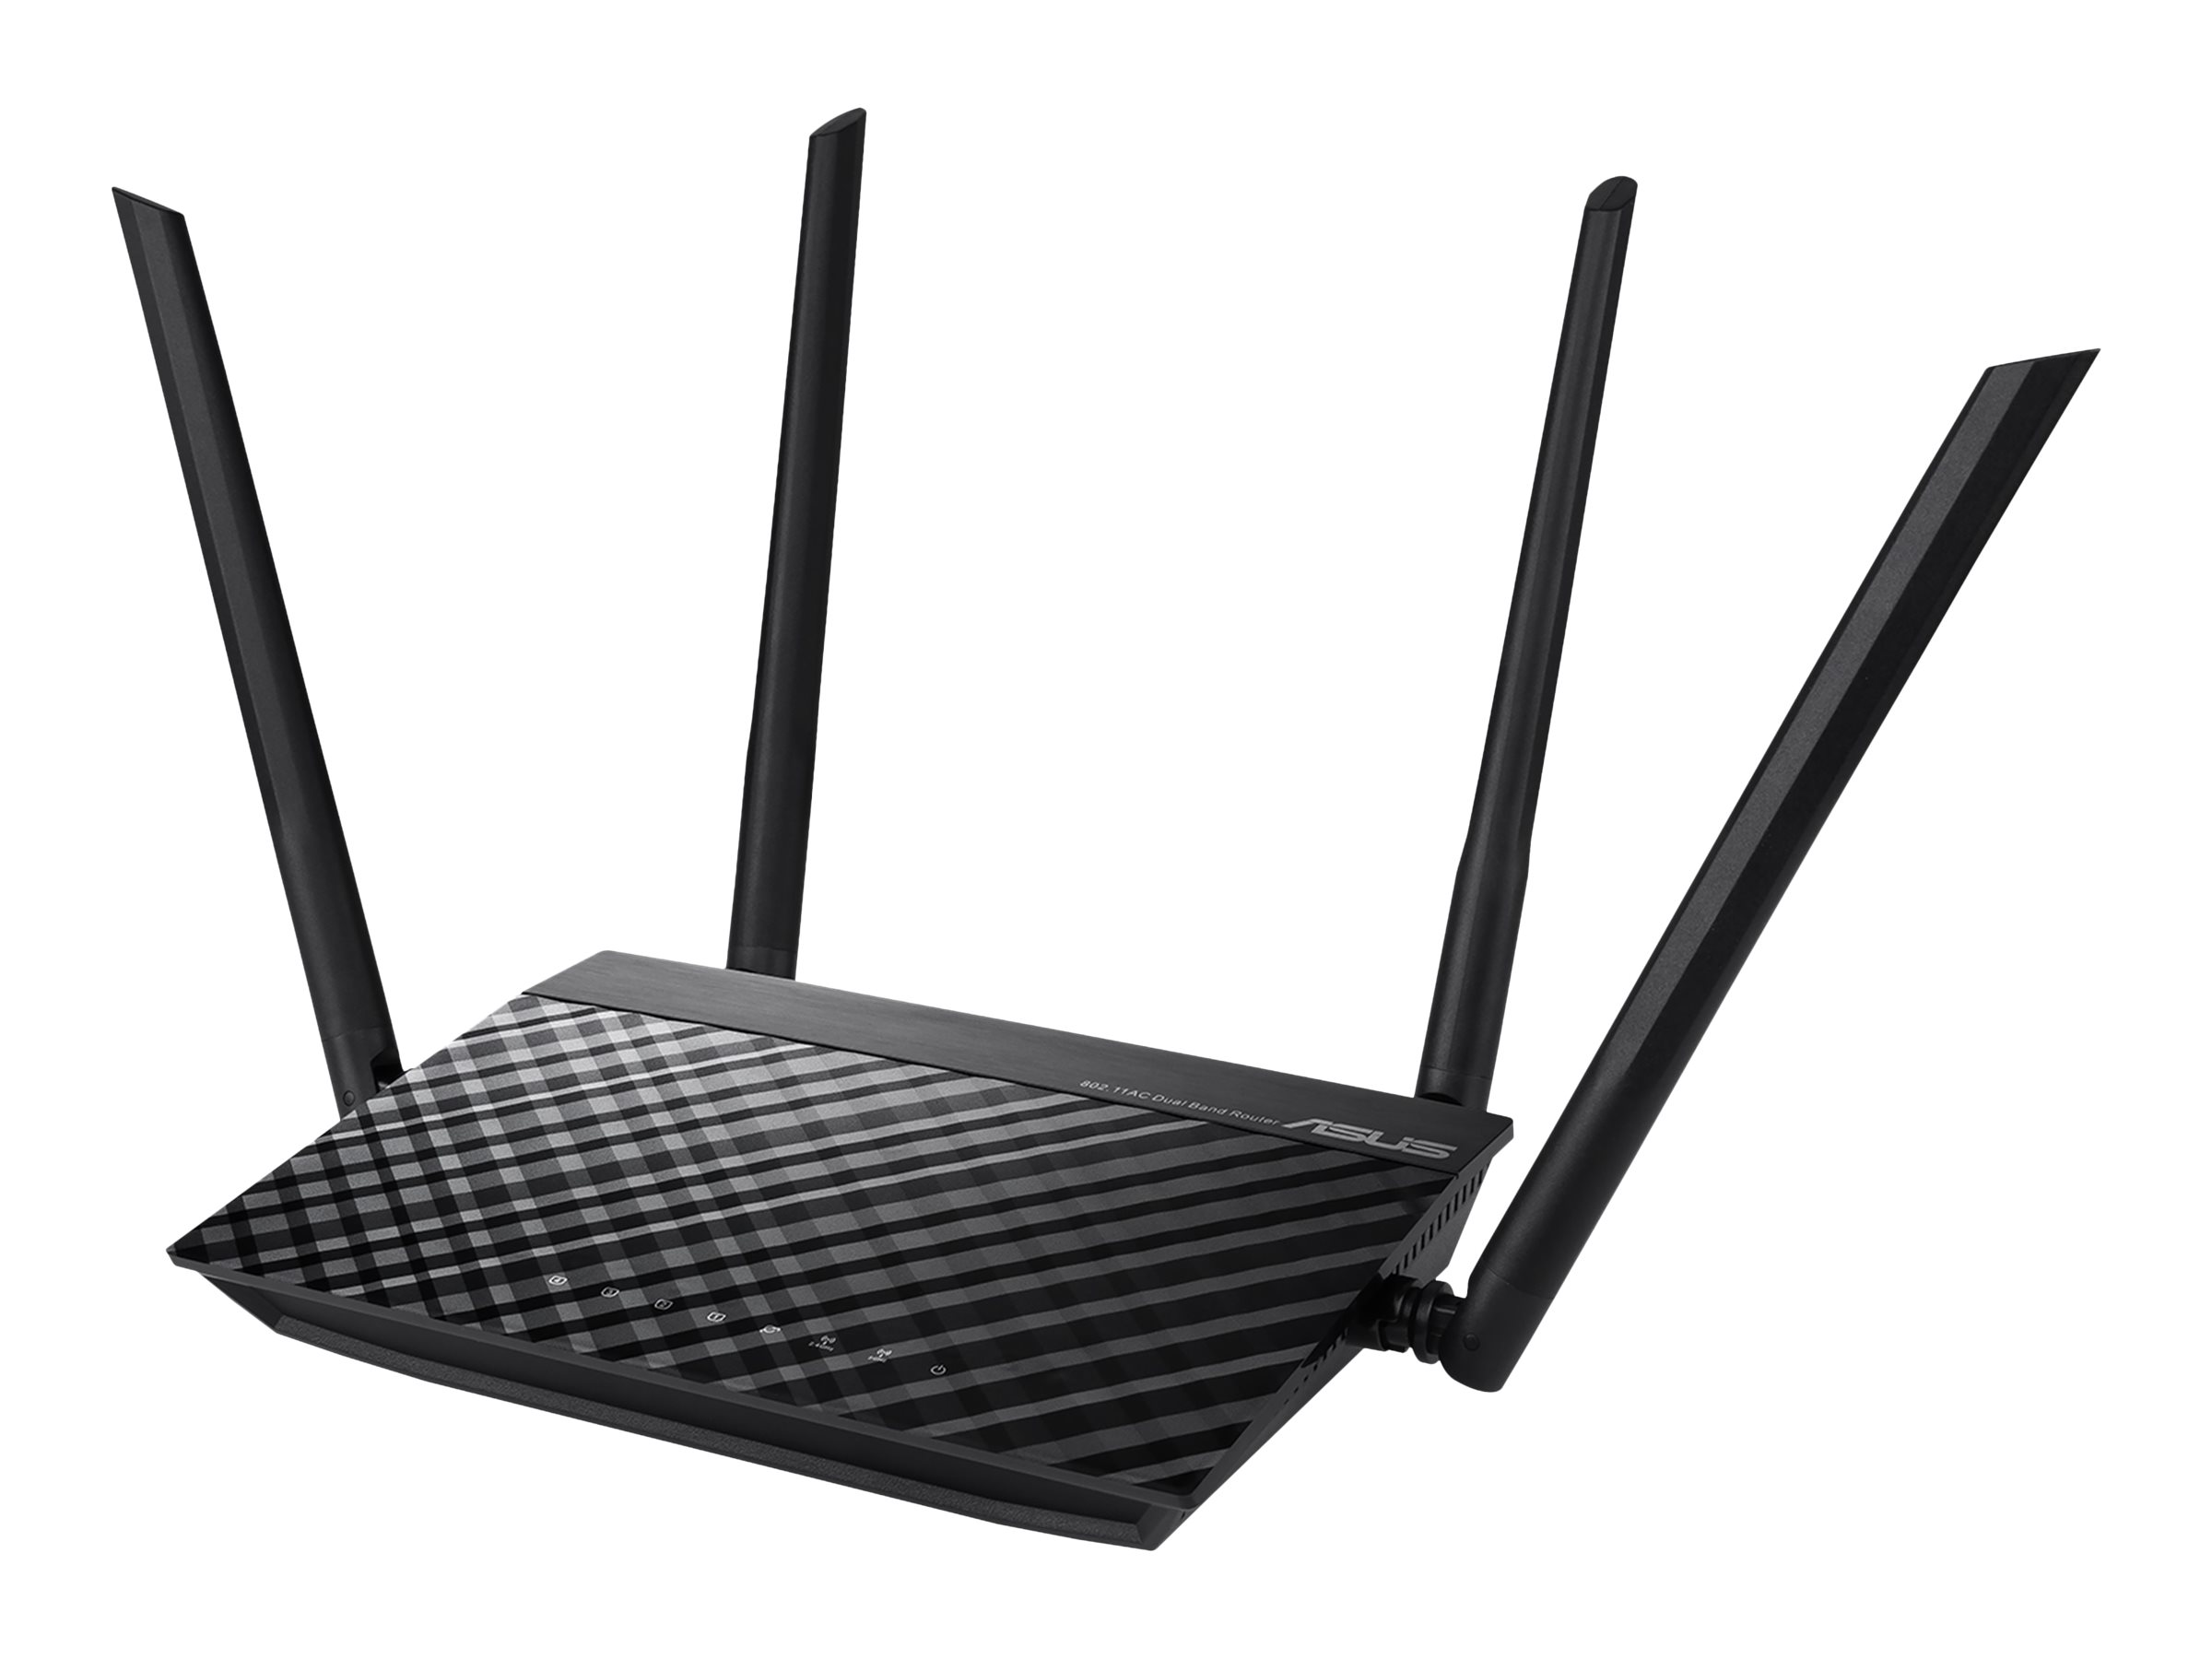 ASUS RT-AC1200 - V2 - Wireless Router - 4-Port-Switch - 802.11a/b/g/n/ac - Dual-Band